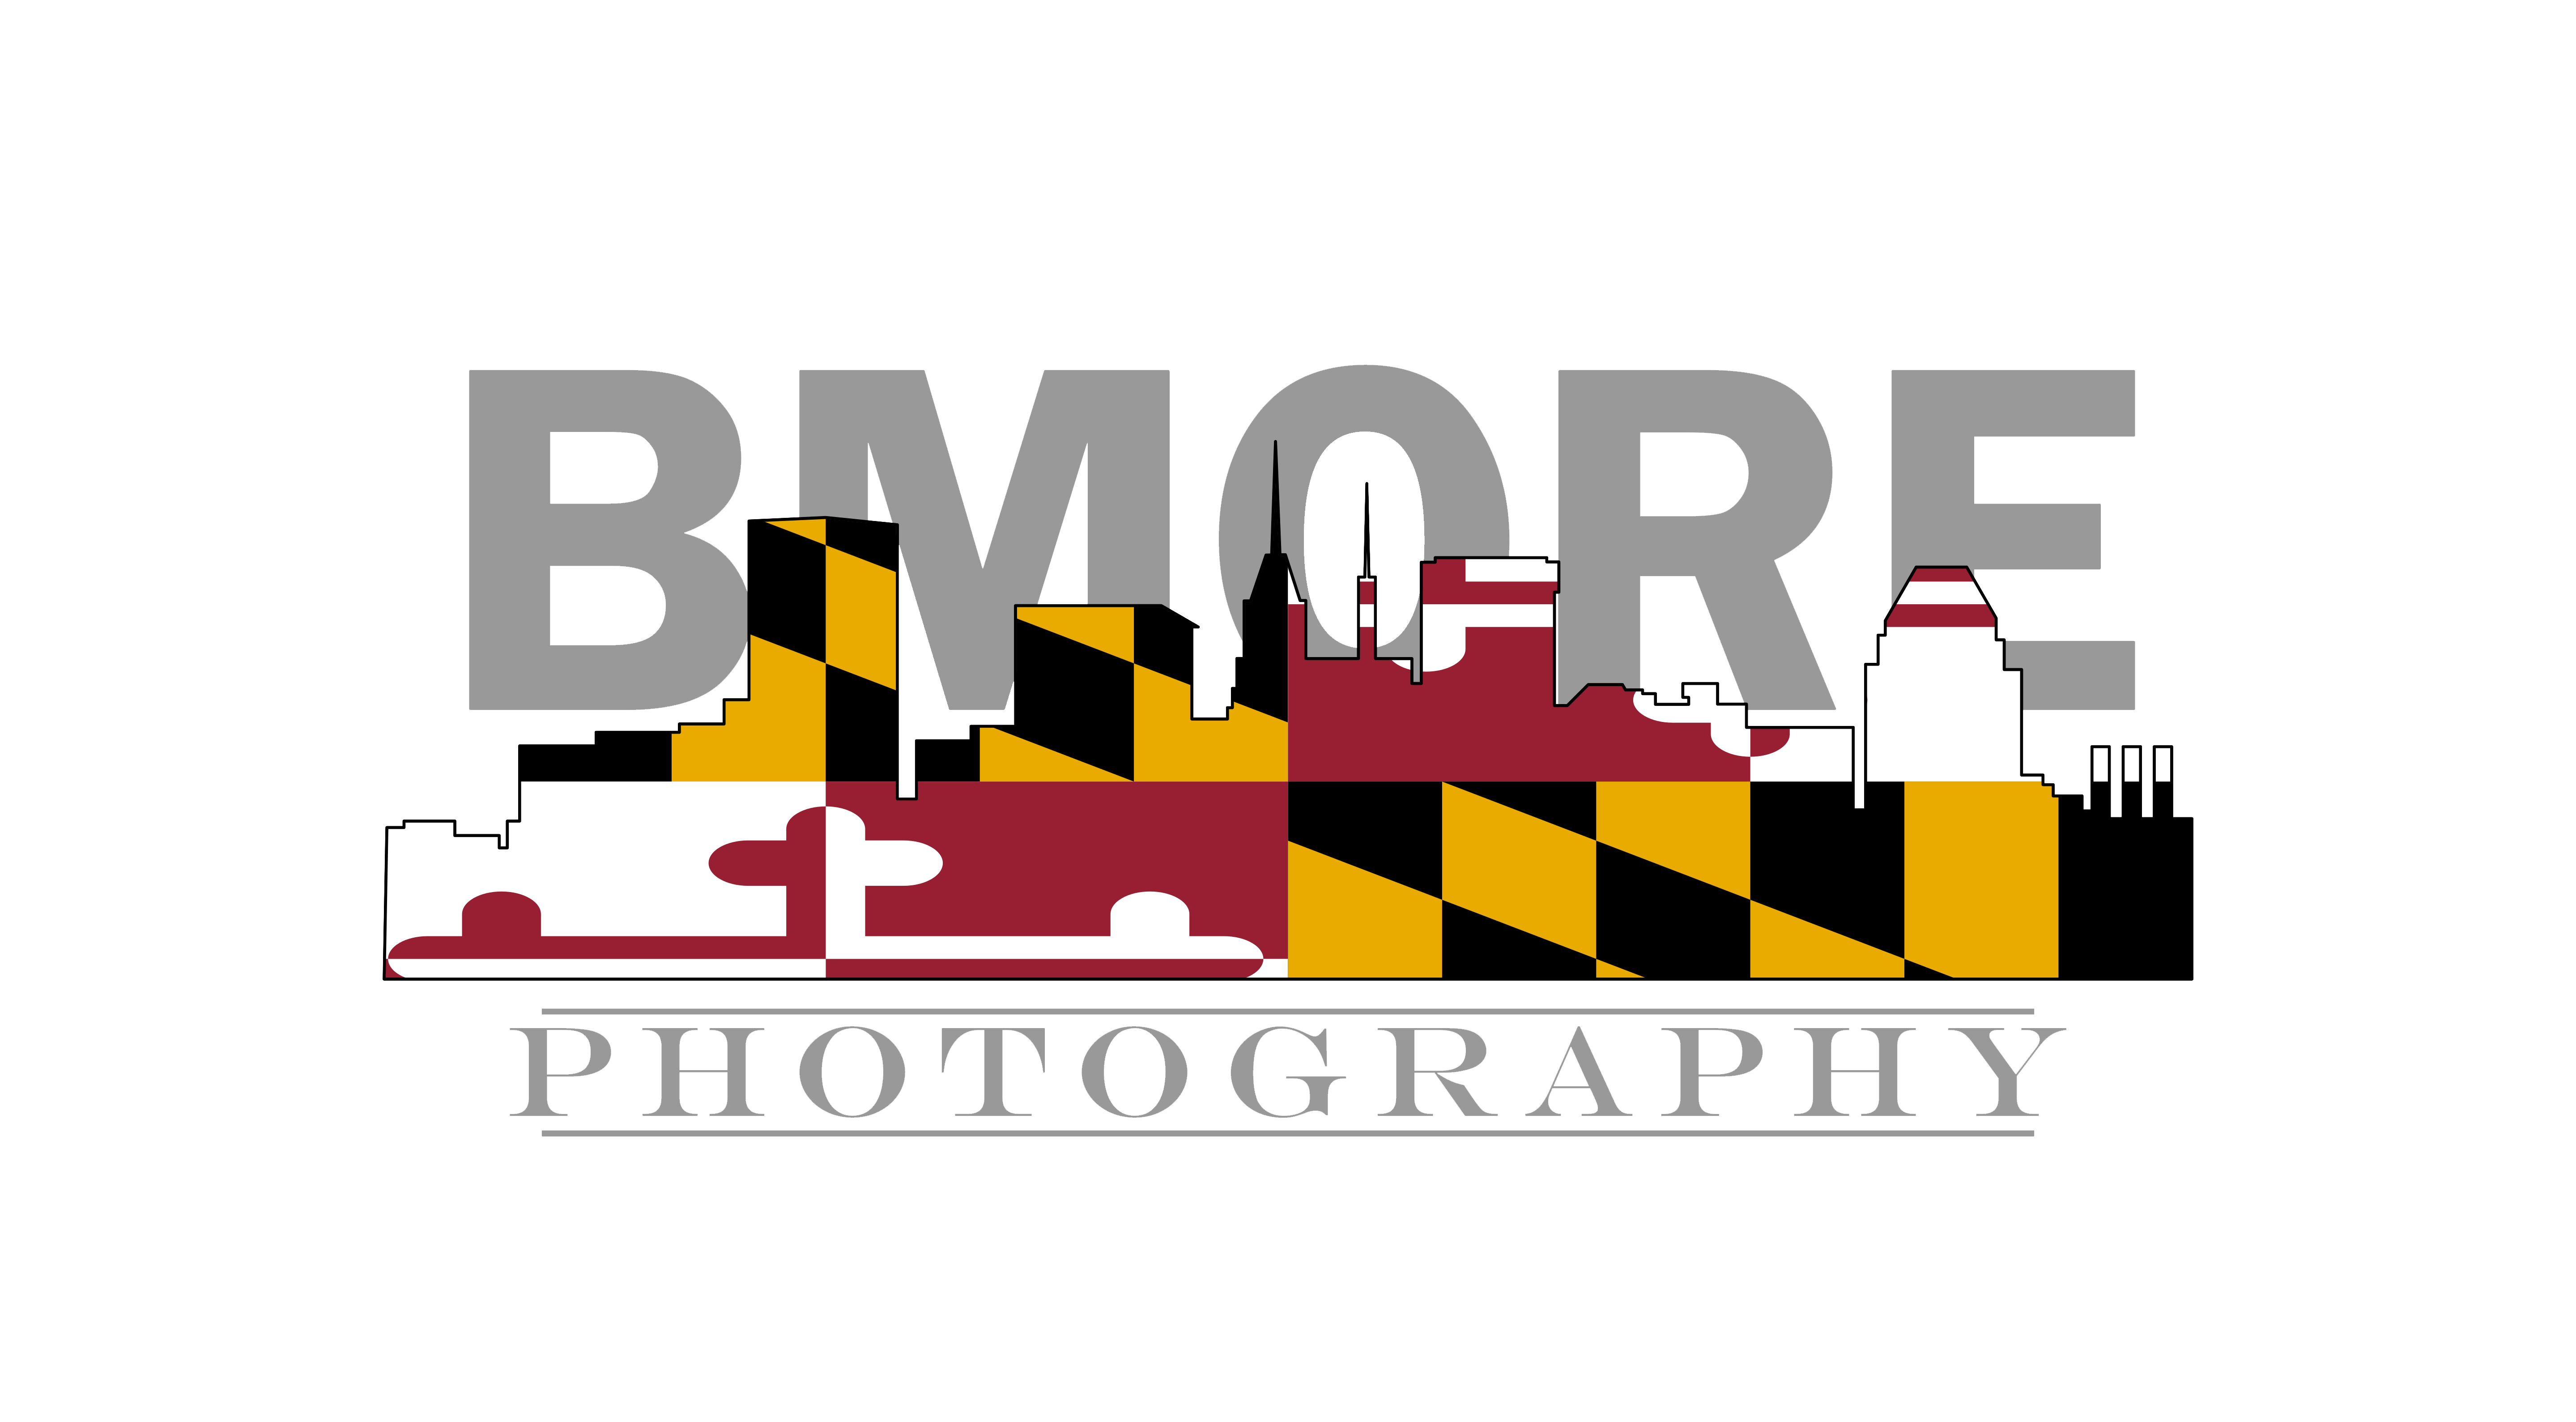 Bmore Photography